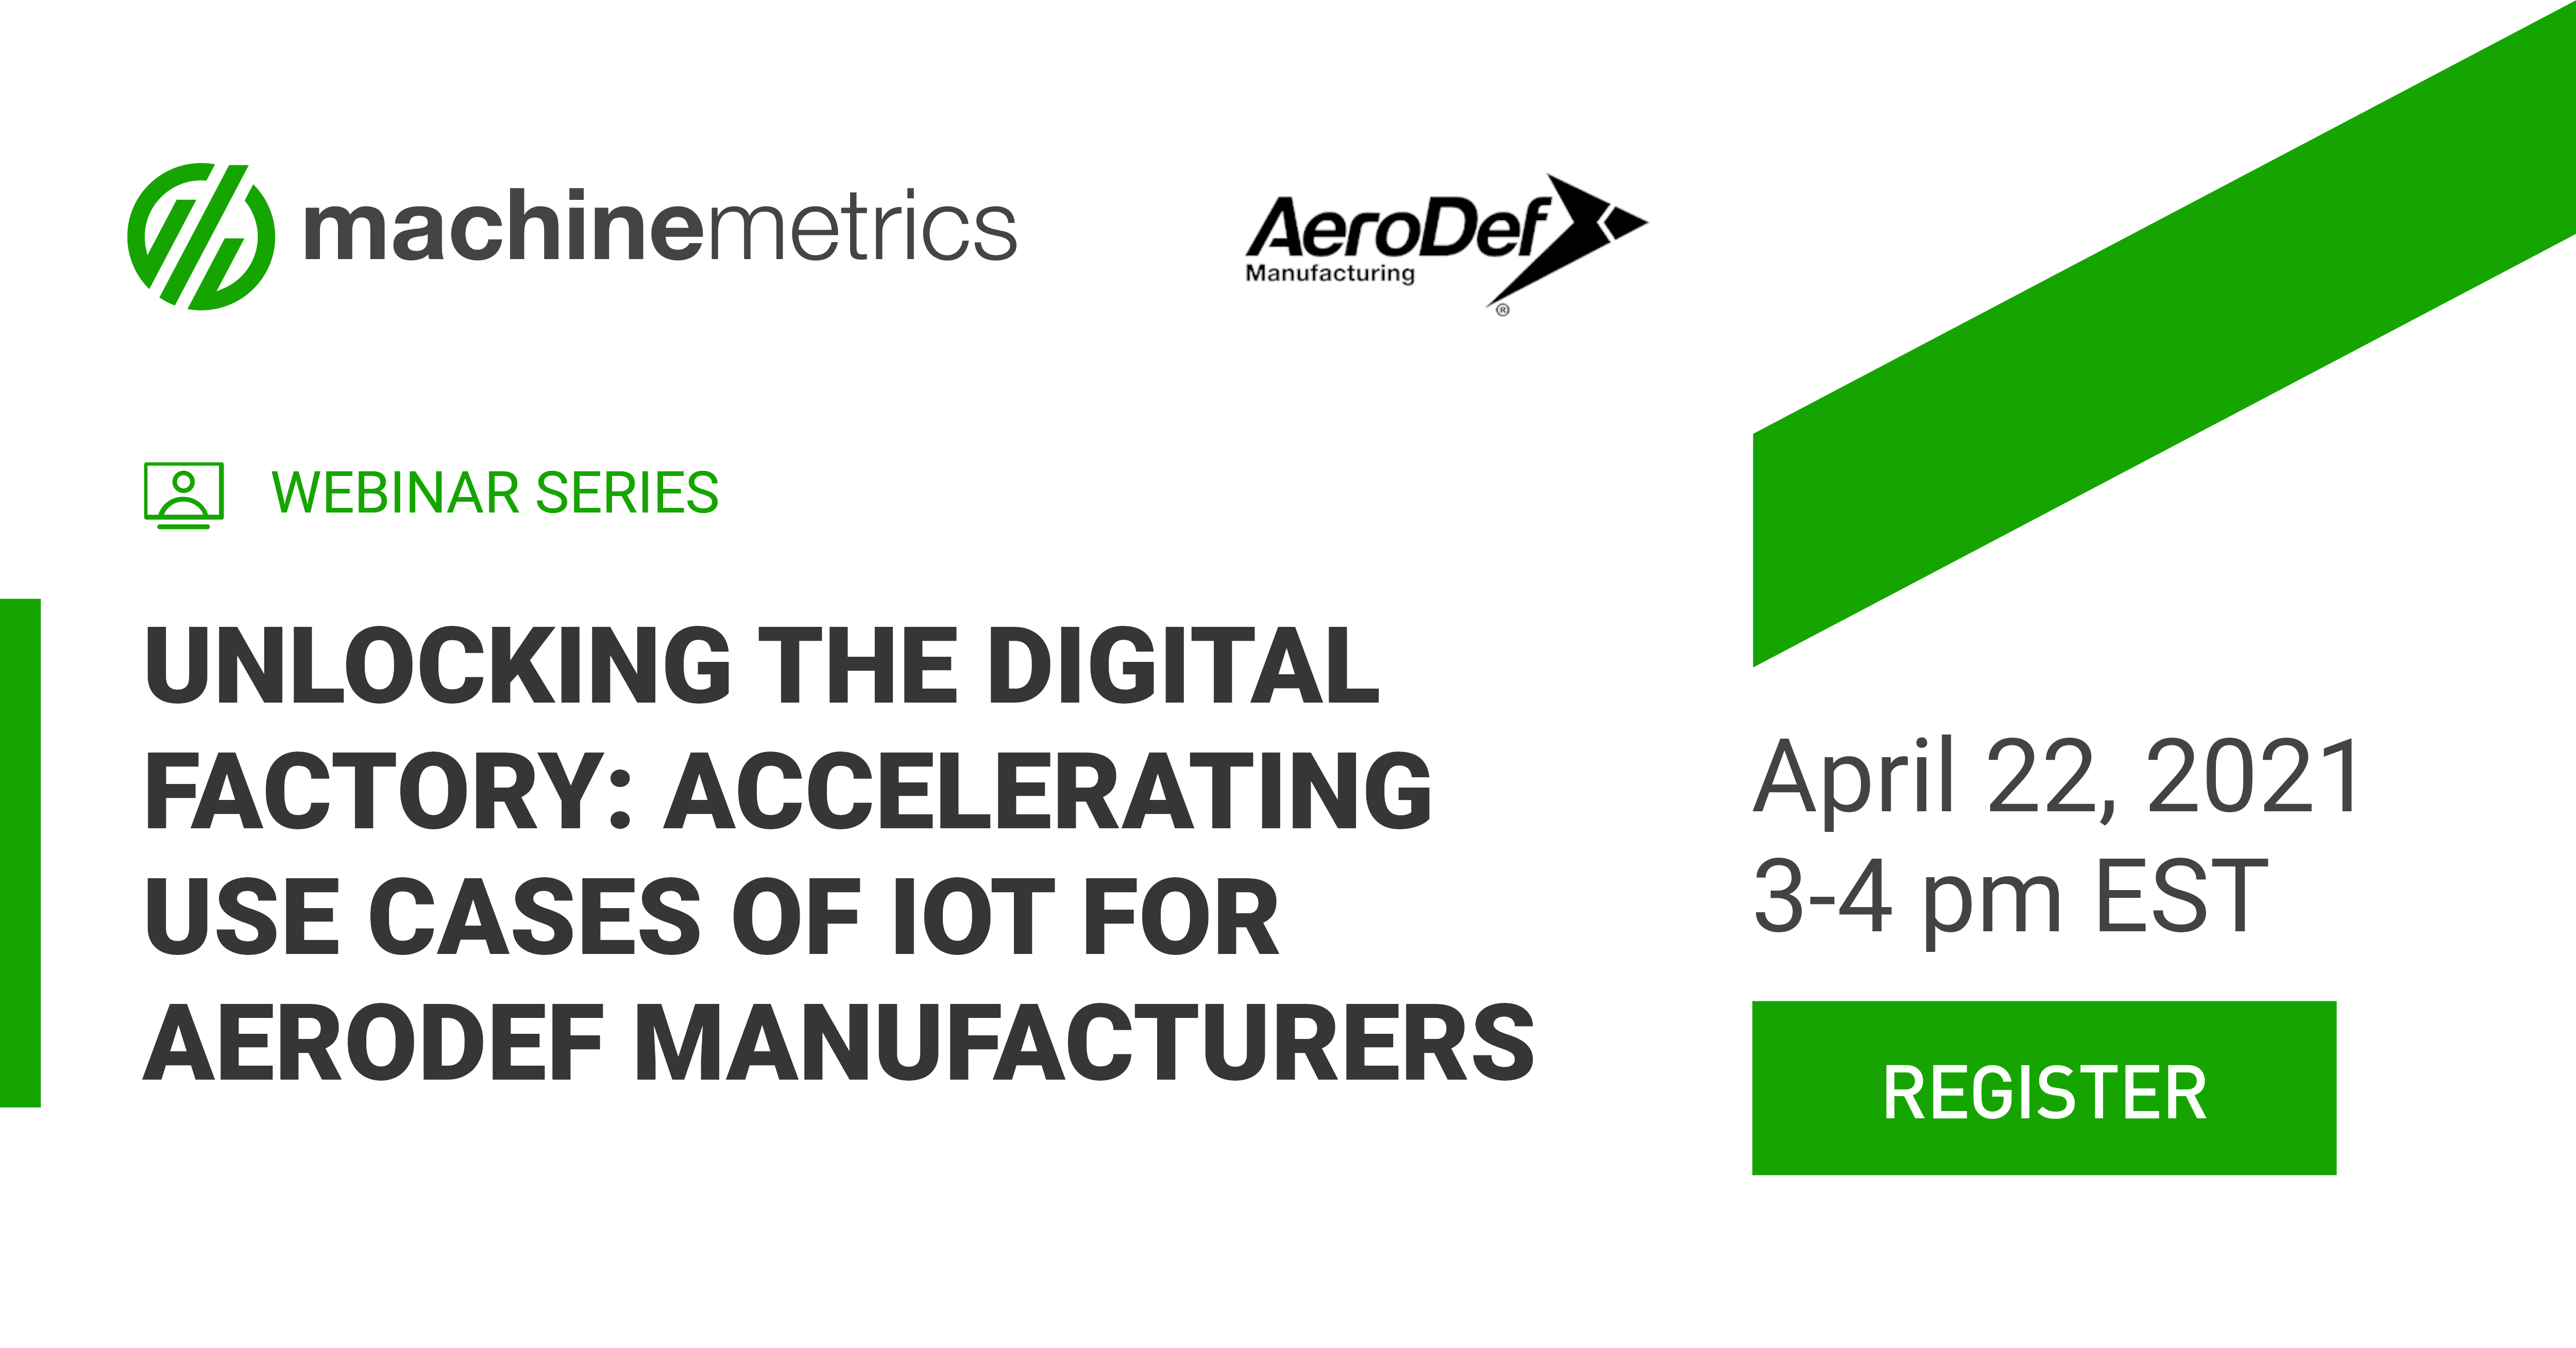 Unlocking the Digital Factory: Accelerating Use Cases of IoT for AeroDef Manufacturers